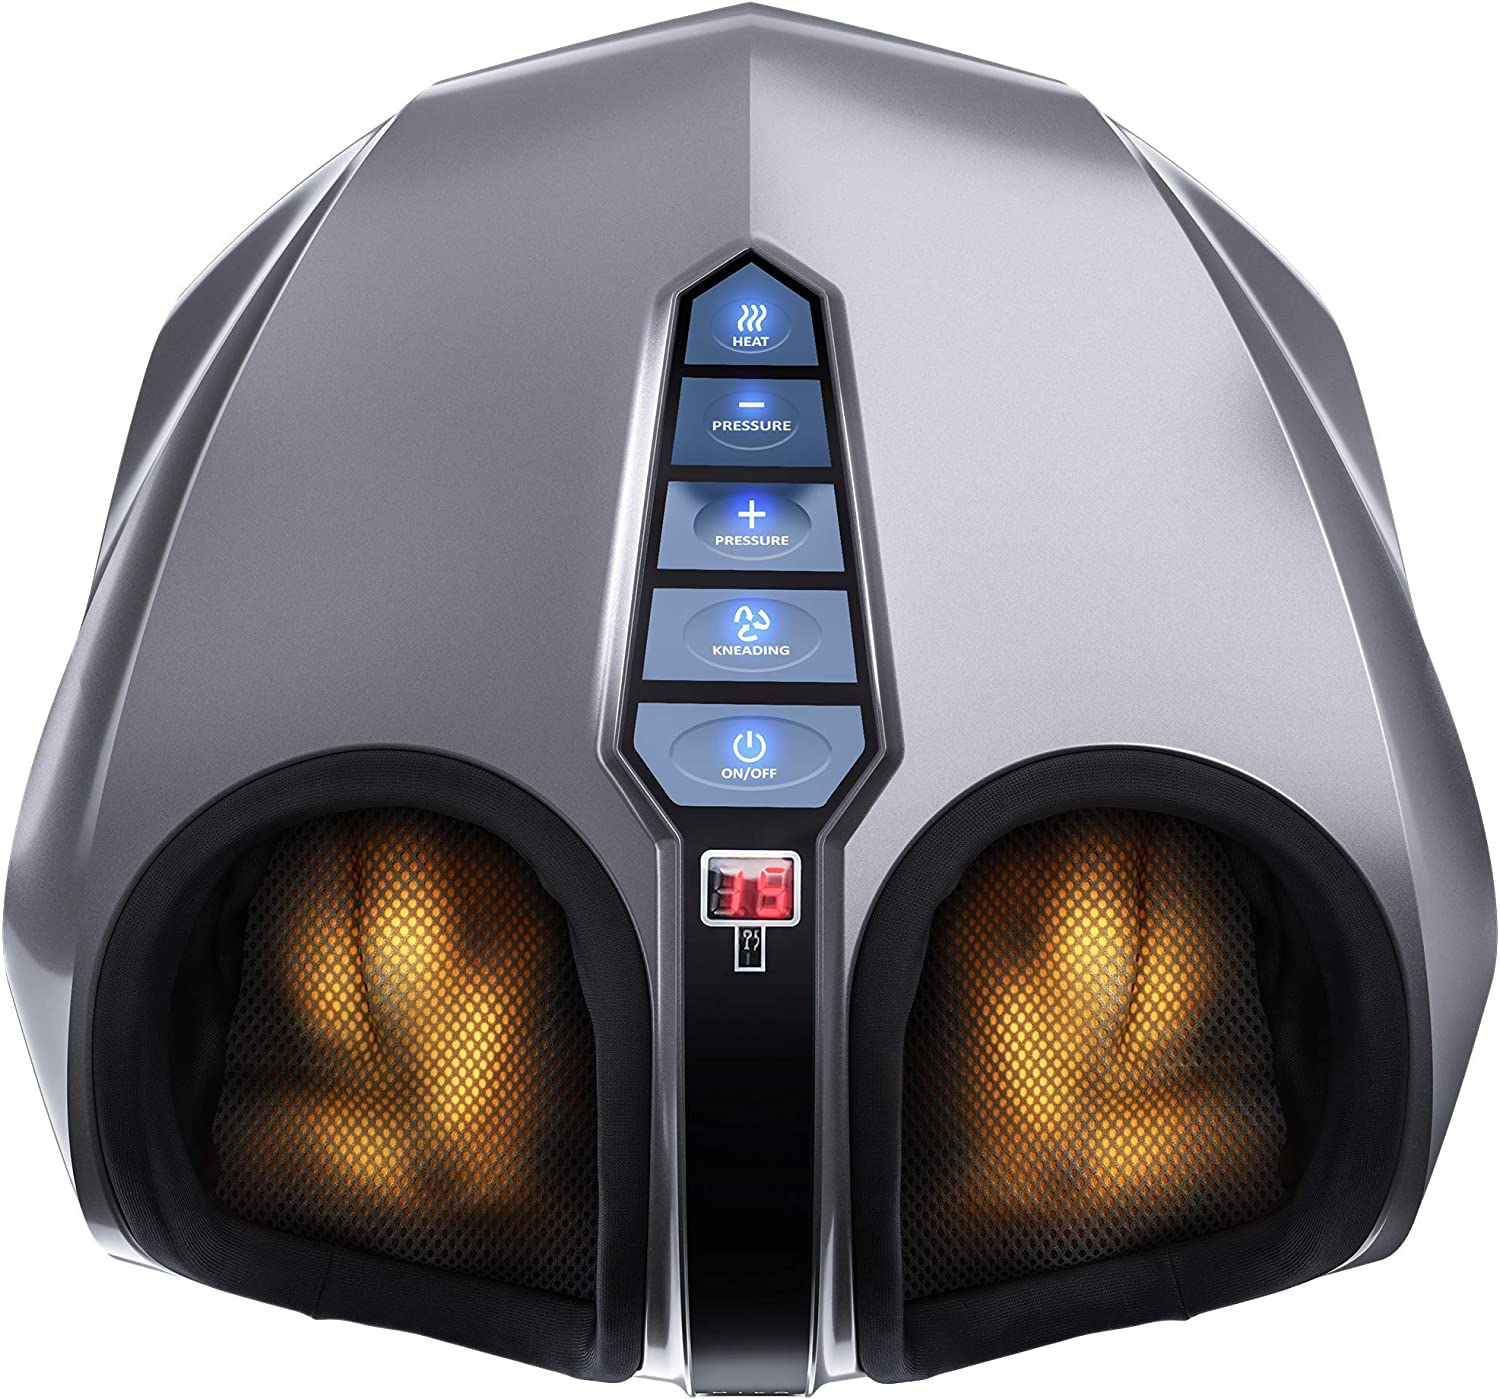 Top 7 Best foot massager for large feet - Buying Guide 2020 2